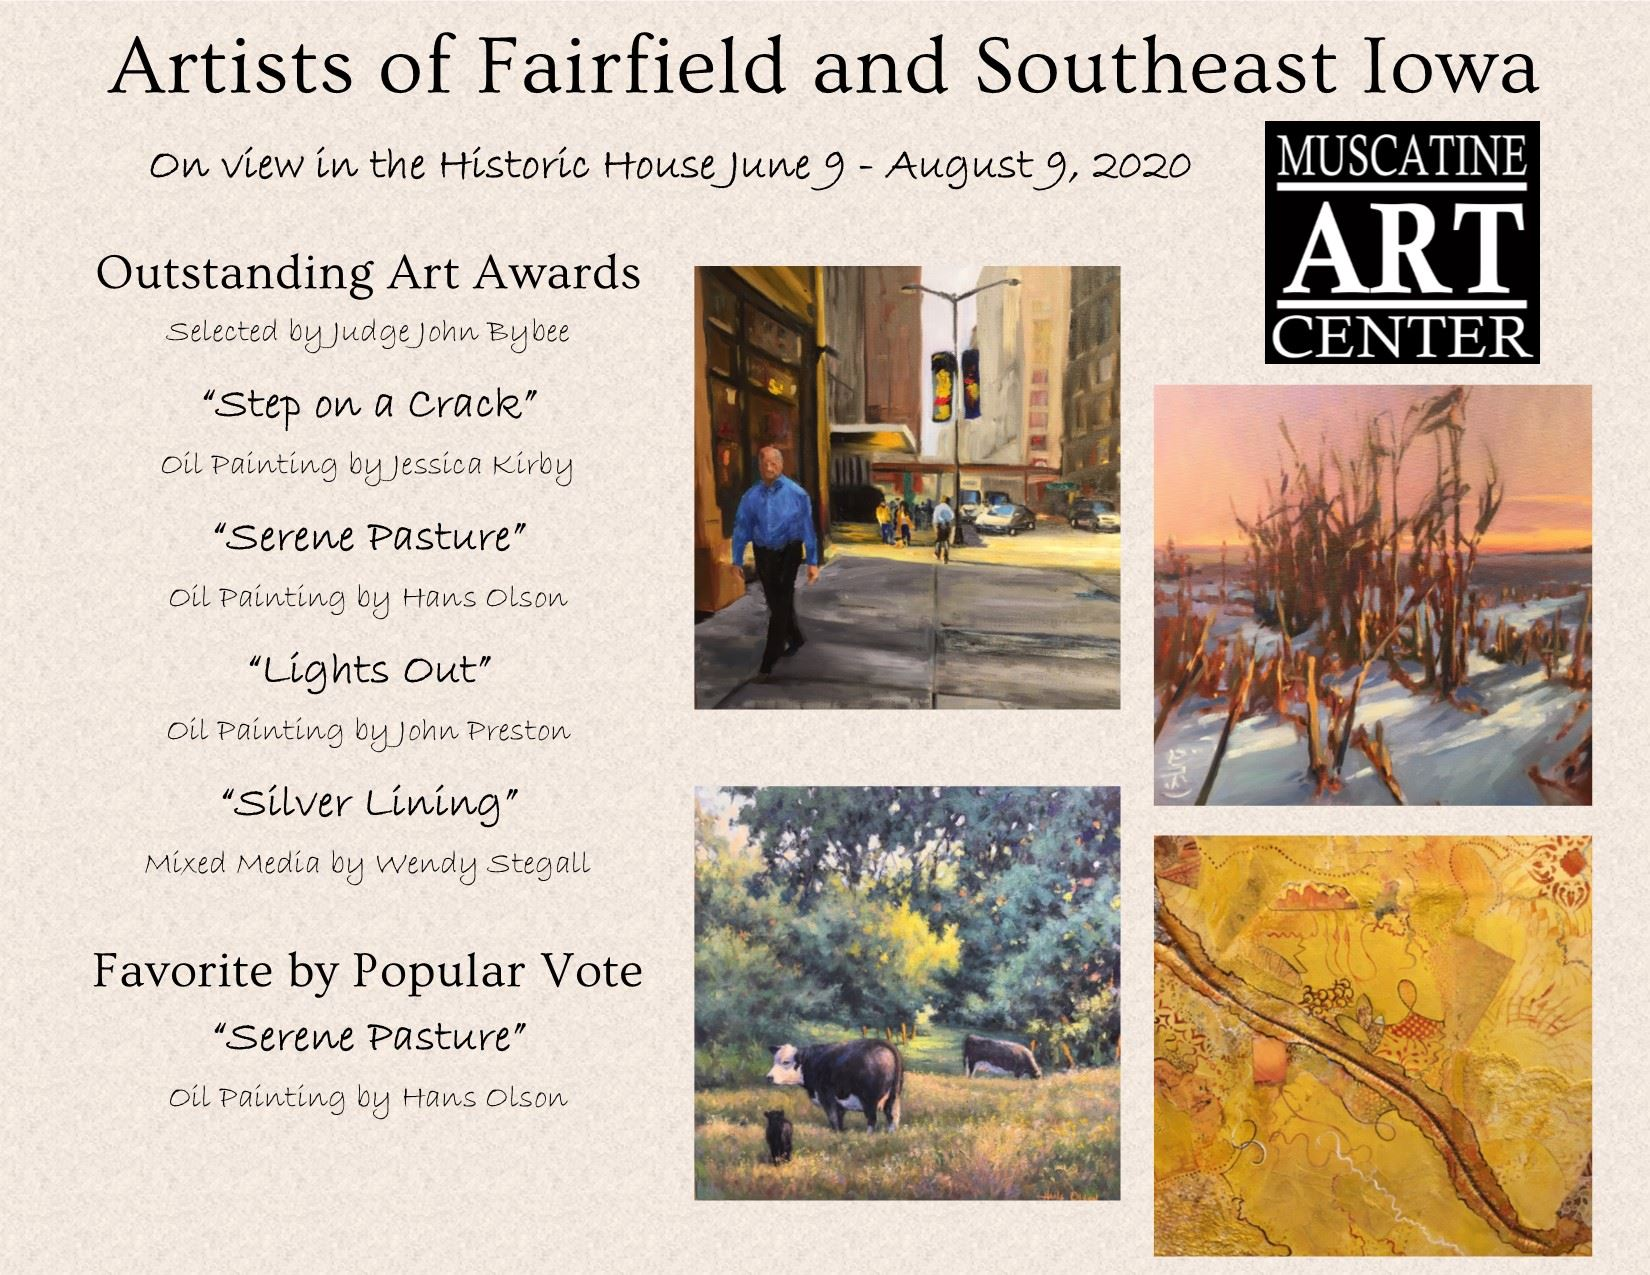 Artists of Fairfield and Southeast Iowa June 9 - August 9, 2020